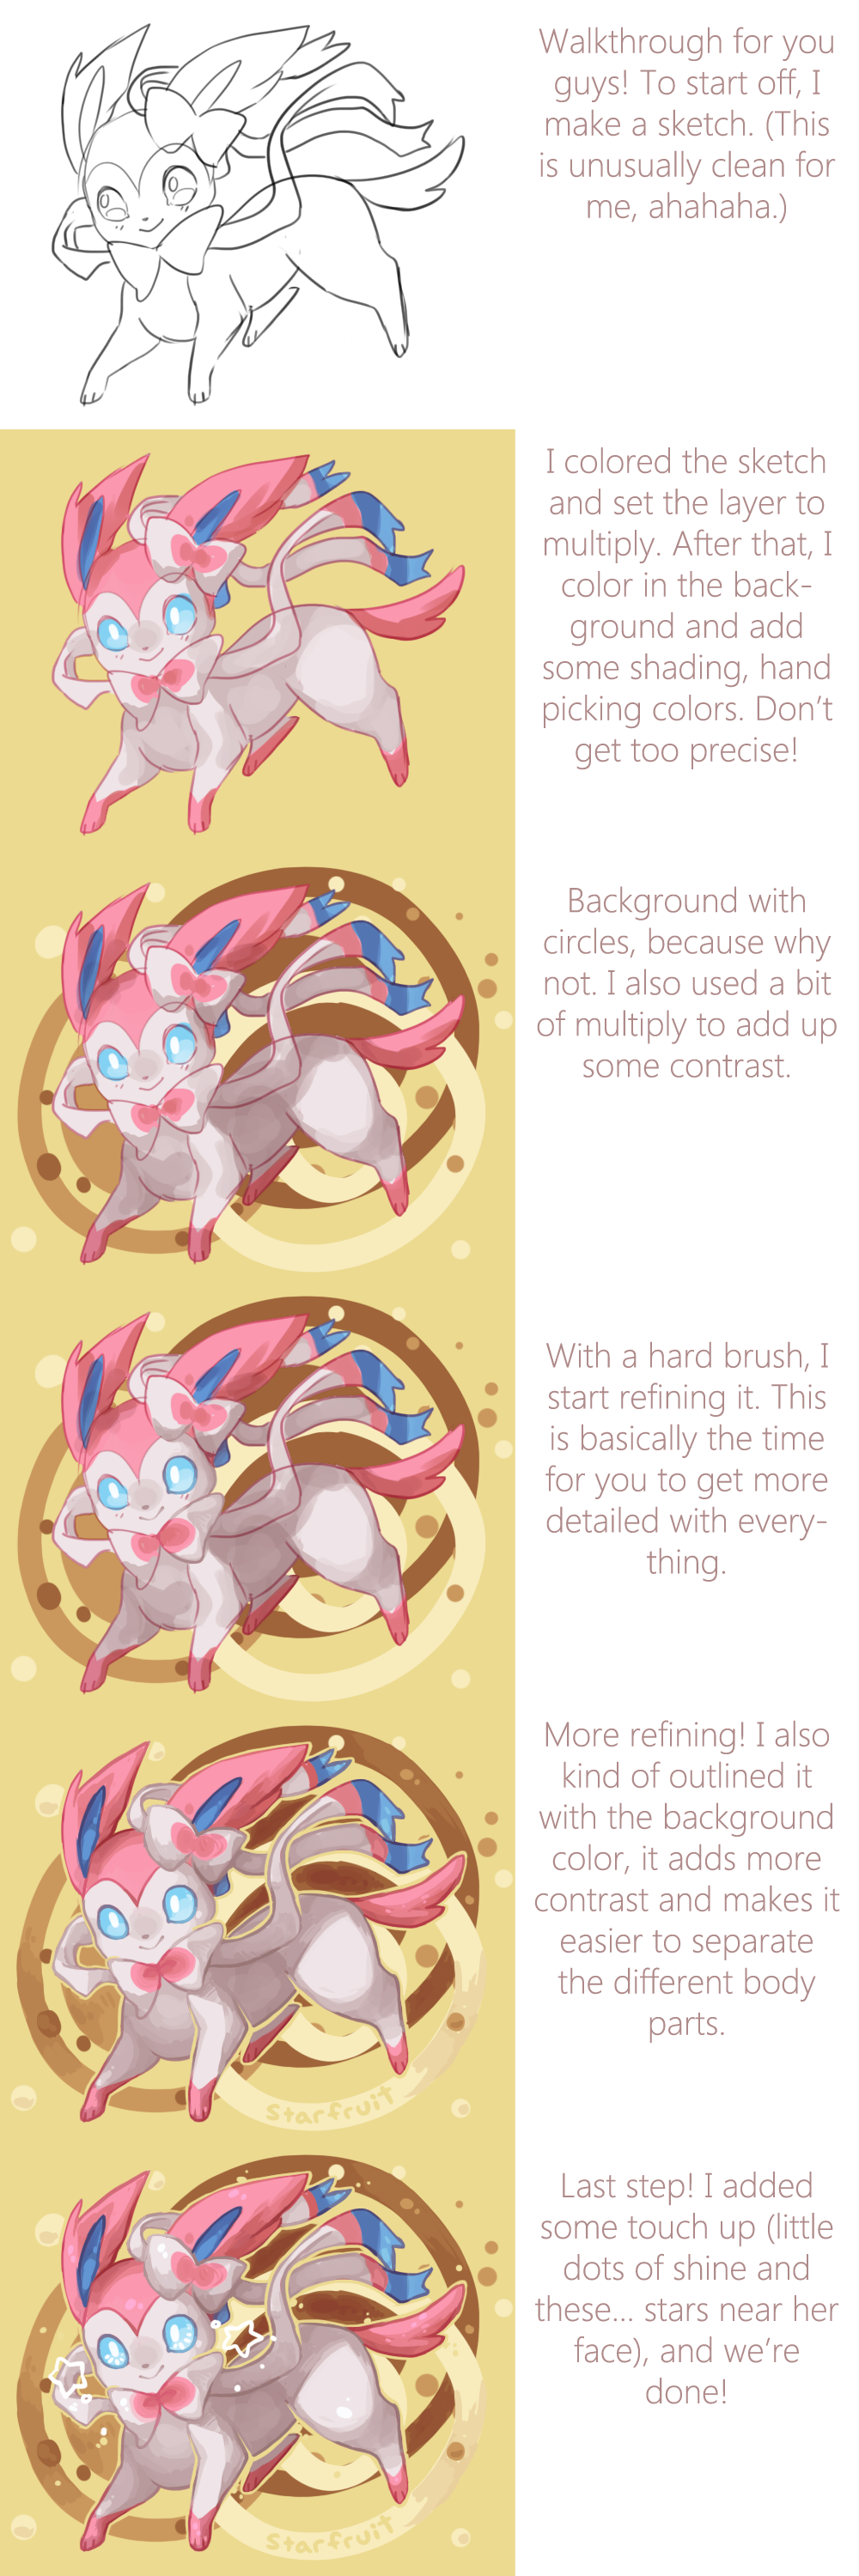 Sylveon Walkthrough by JAYWlNG